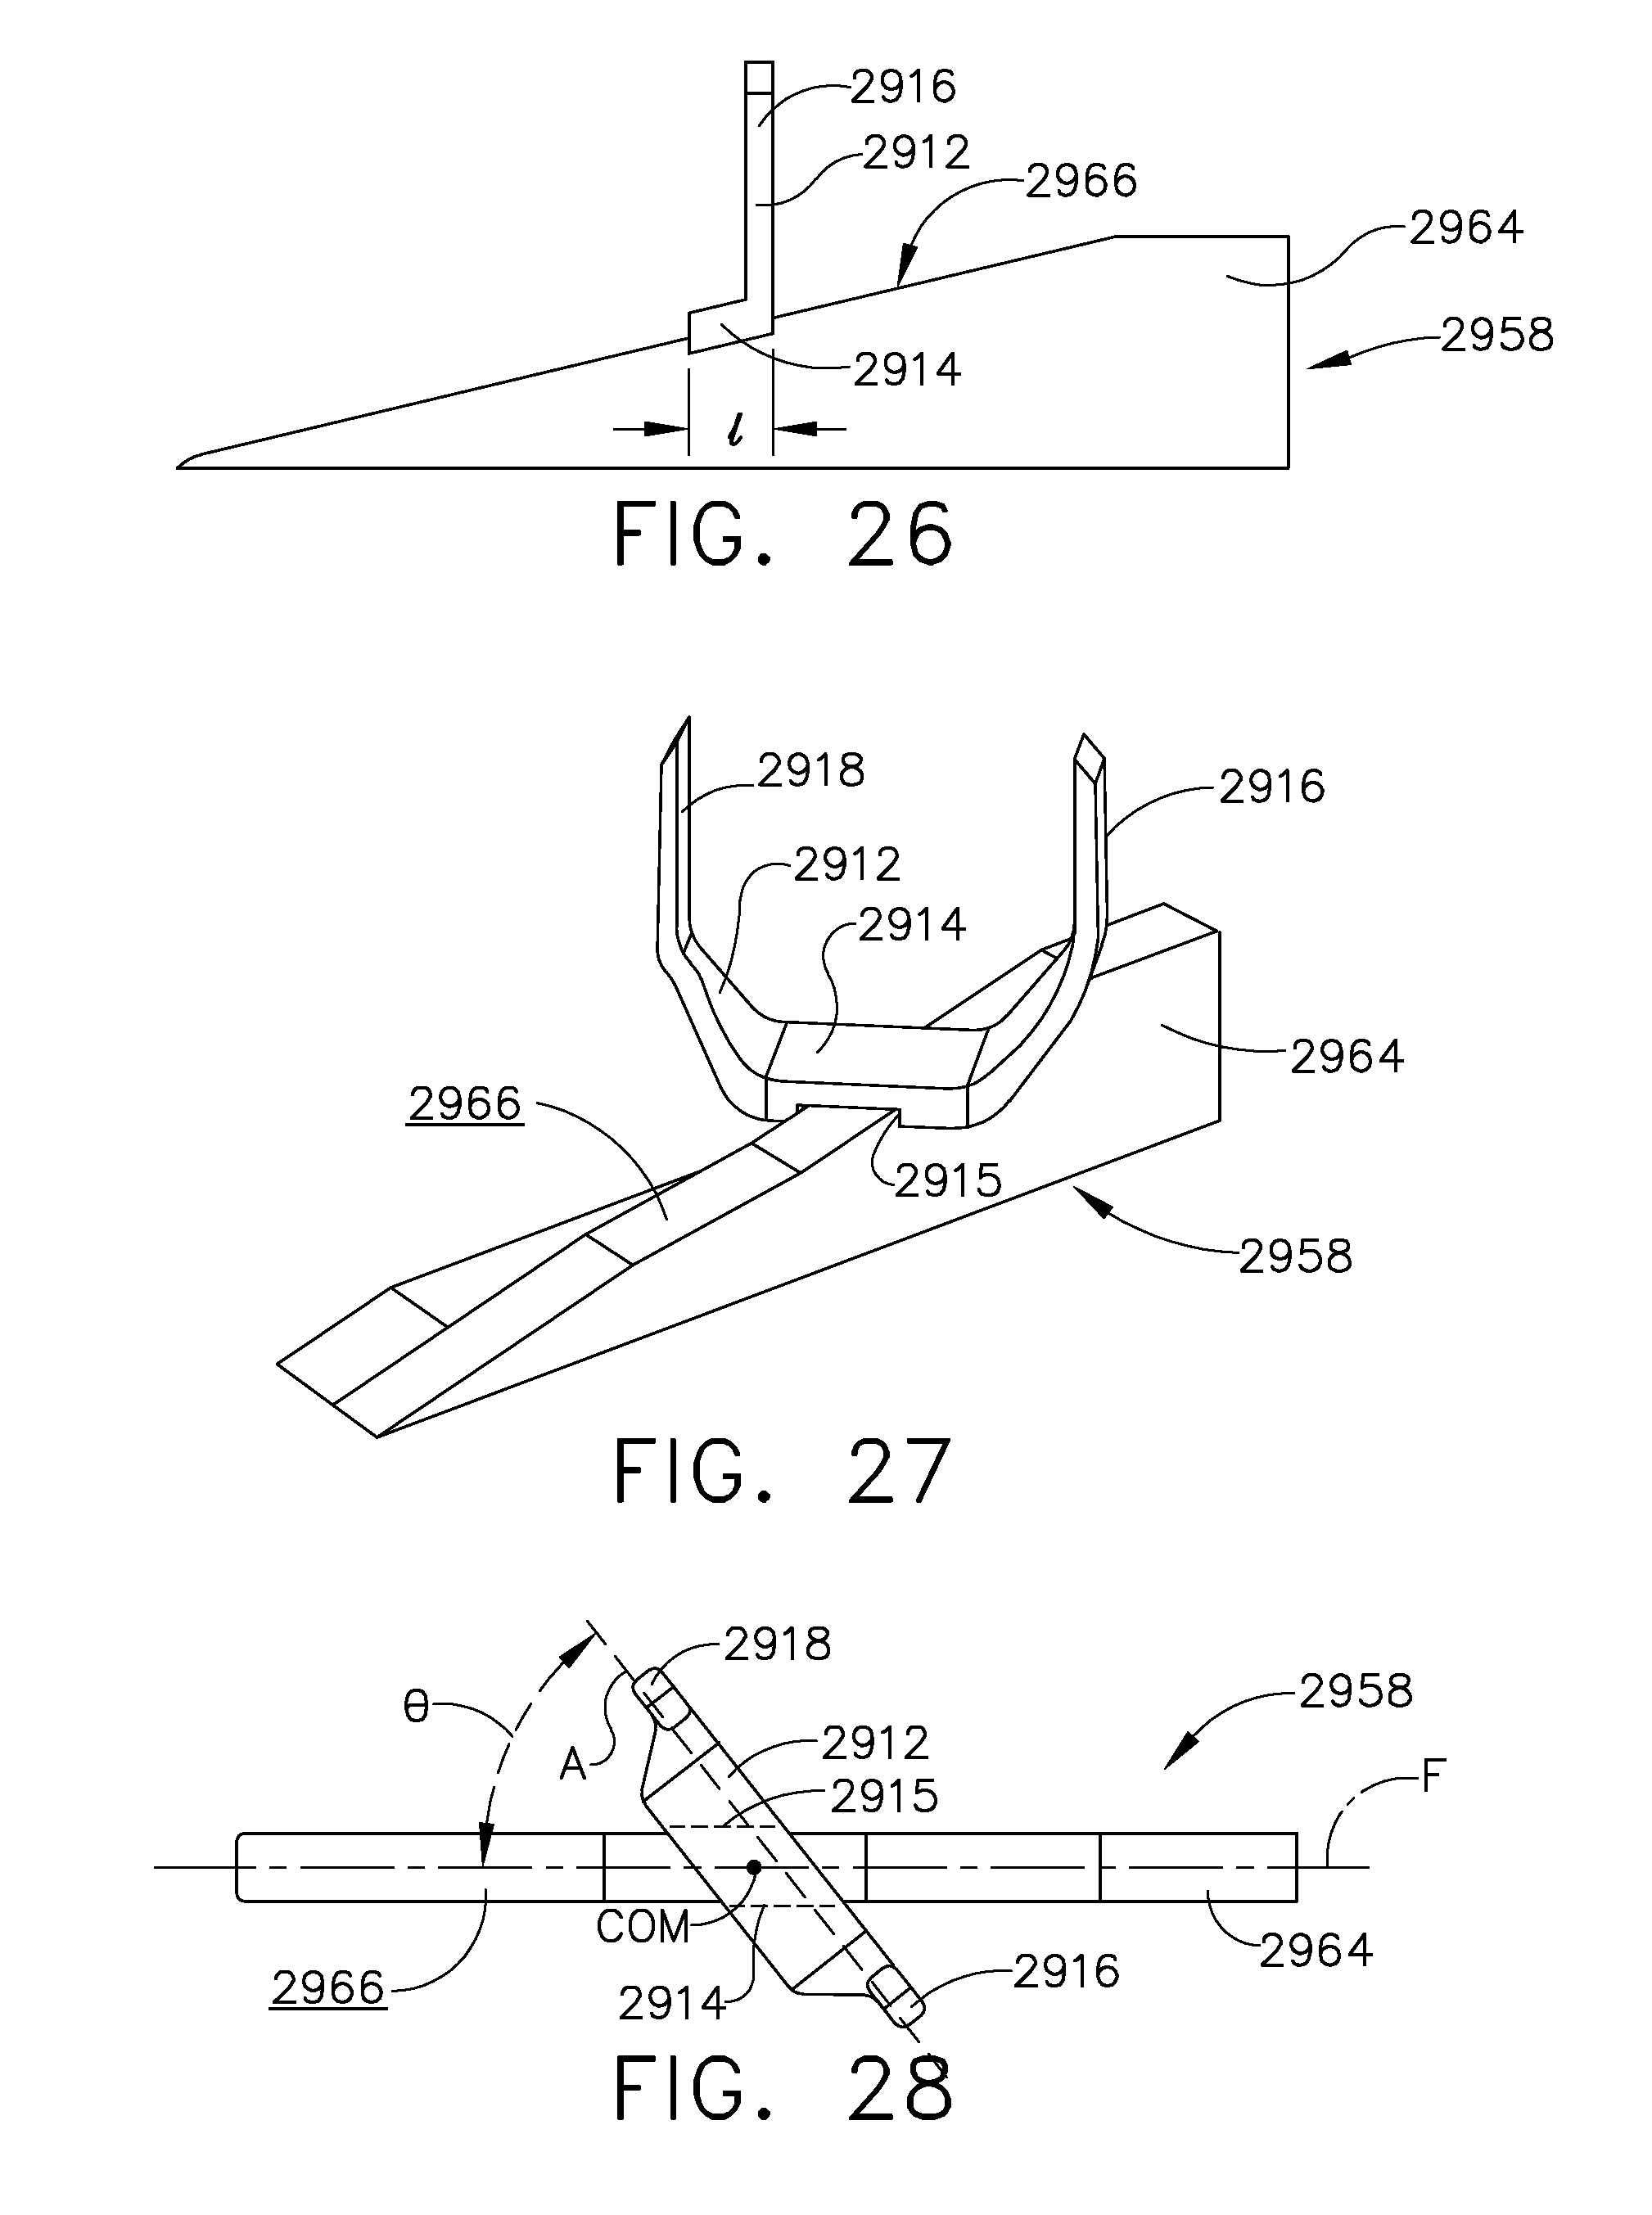 Us20160089146a1 circular fastener cartridges for applying radially expandable fastener lines patents